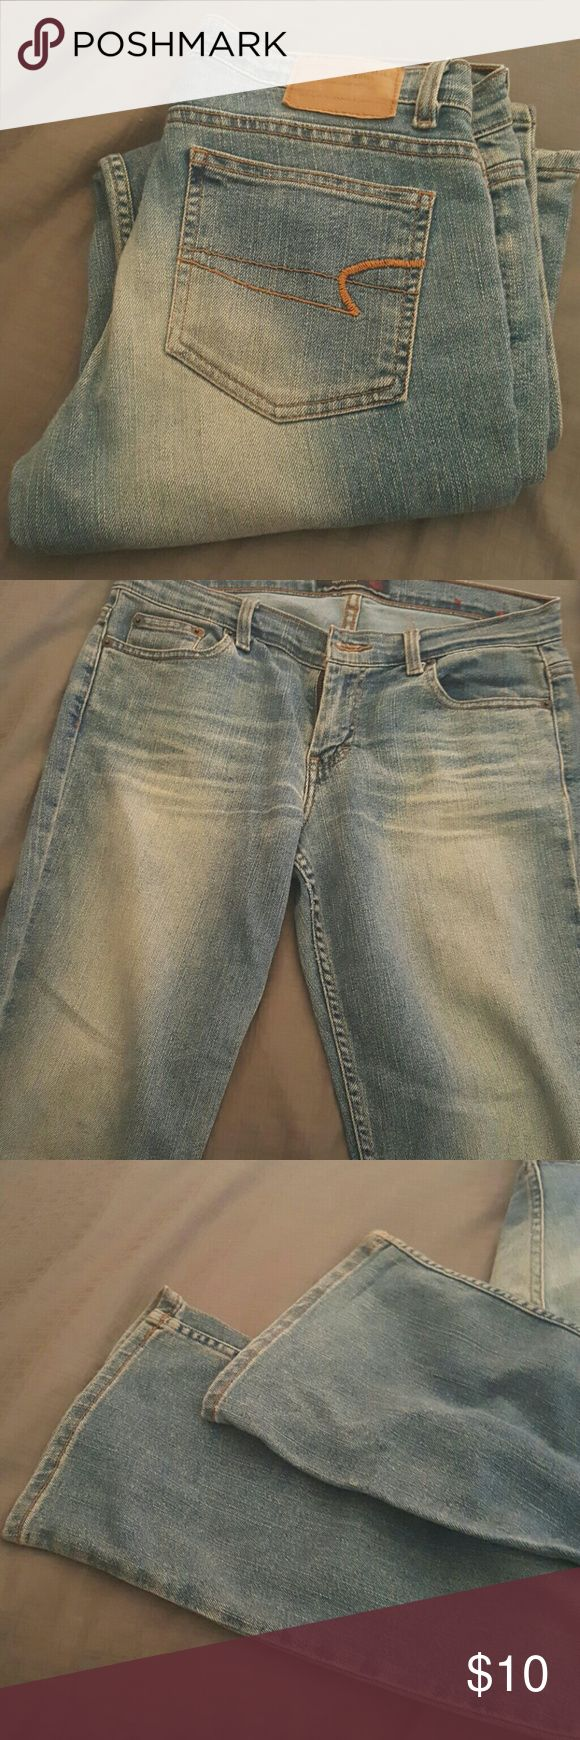 American Eagle Jeans American Eagle Jeans in great shape slightly flared fitted in thigh area American Eagle Outfitters Jeans Flare & Wide Leg